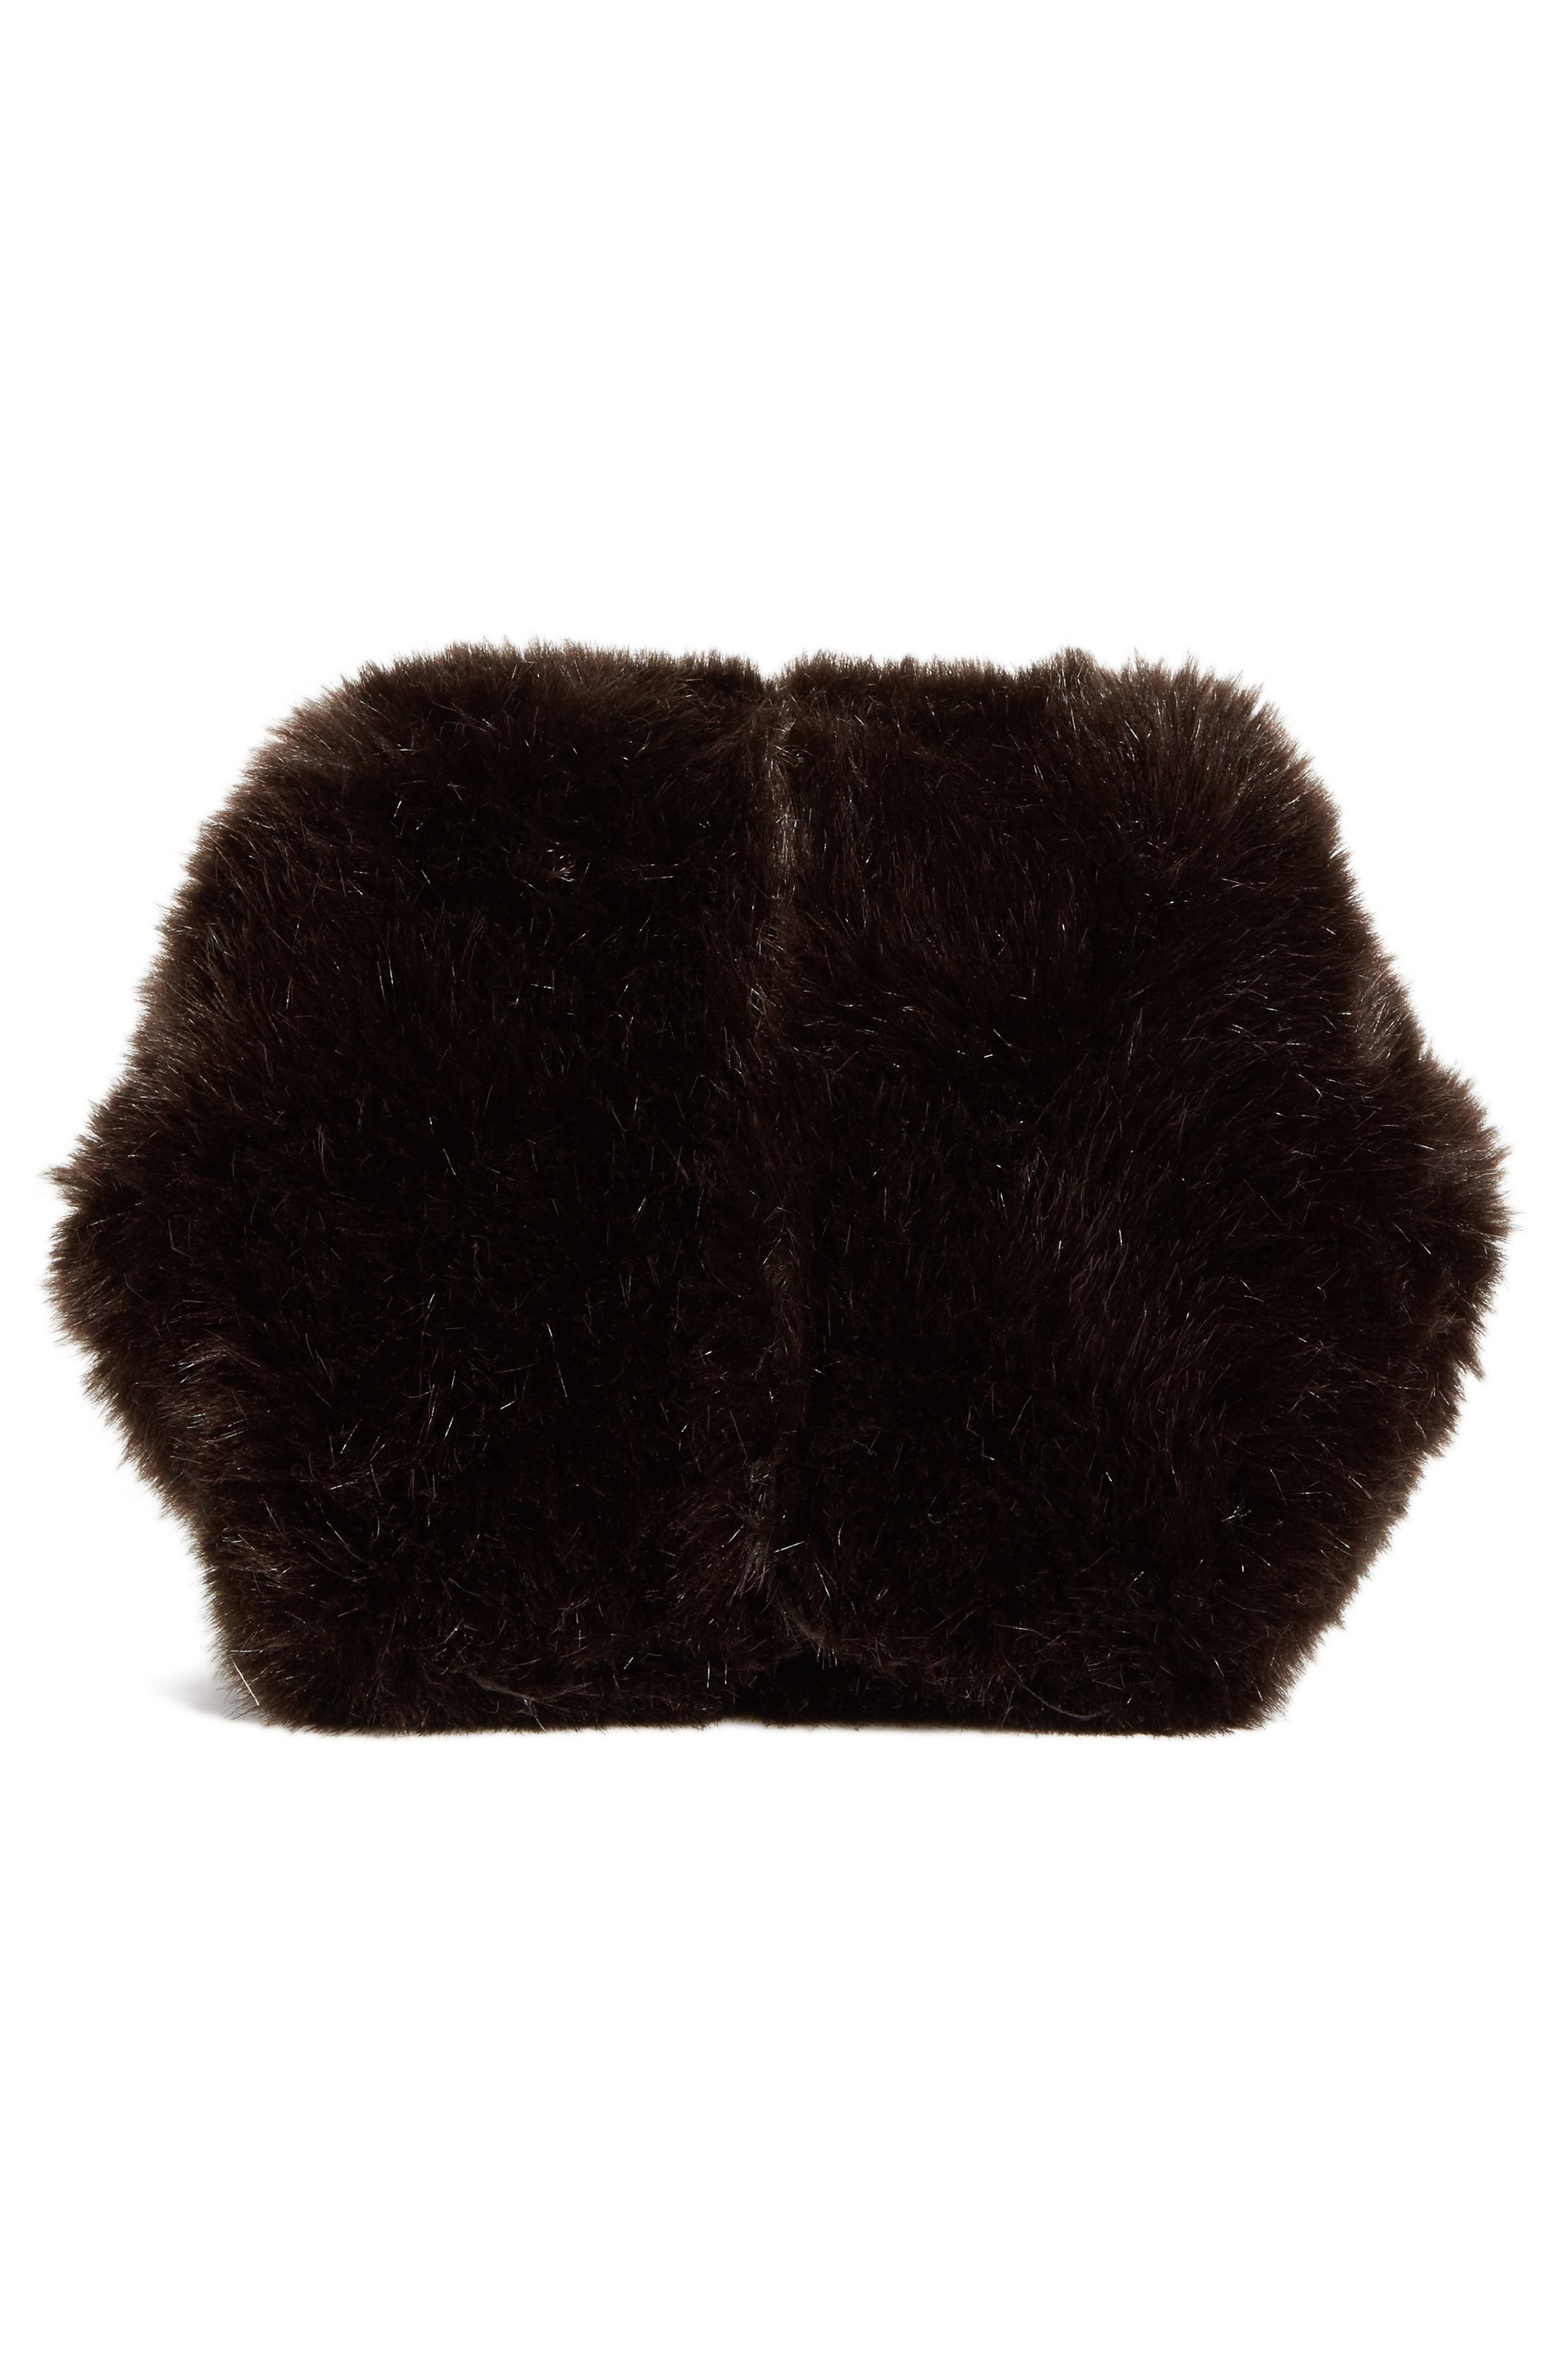 Tissue Pouch Faux Fur Bag,                             Alternate thumbnail 6, color,                             200